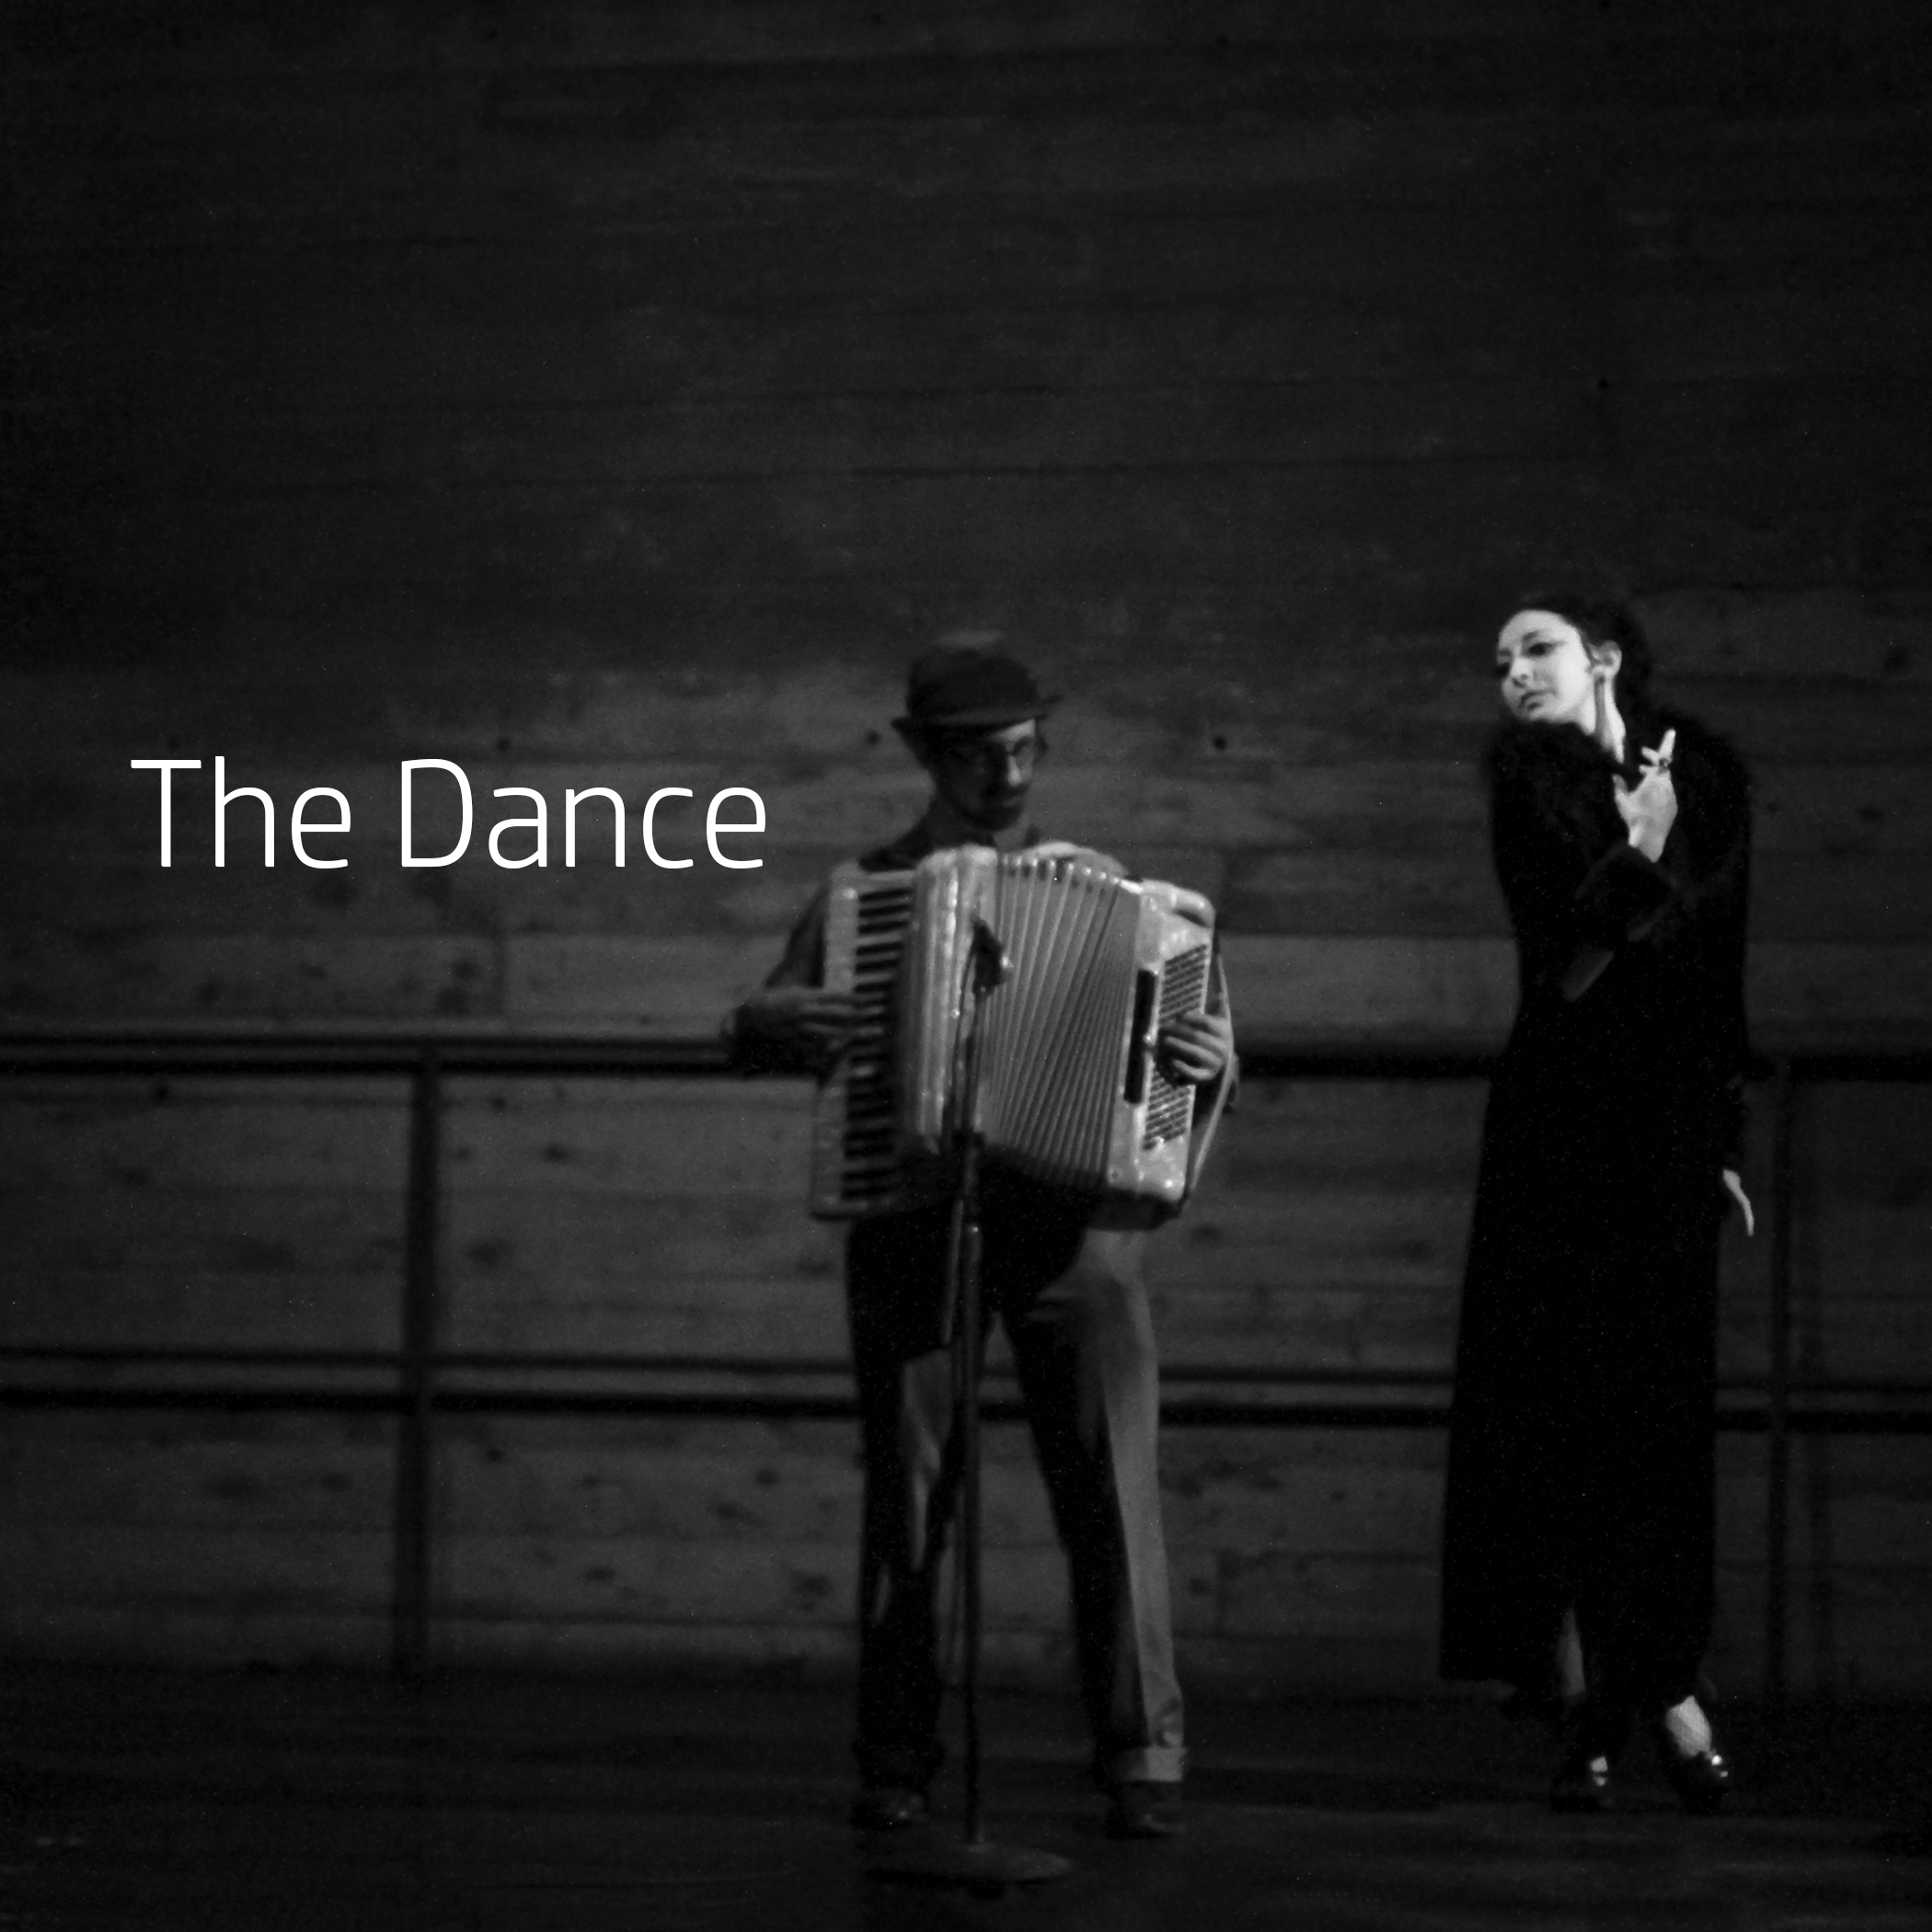 The Dance | La Danza